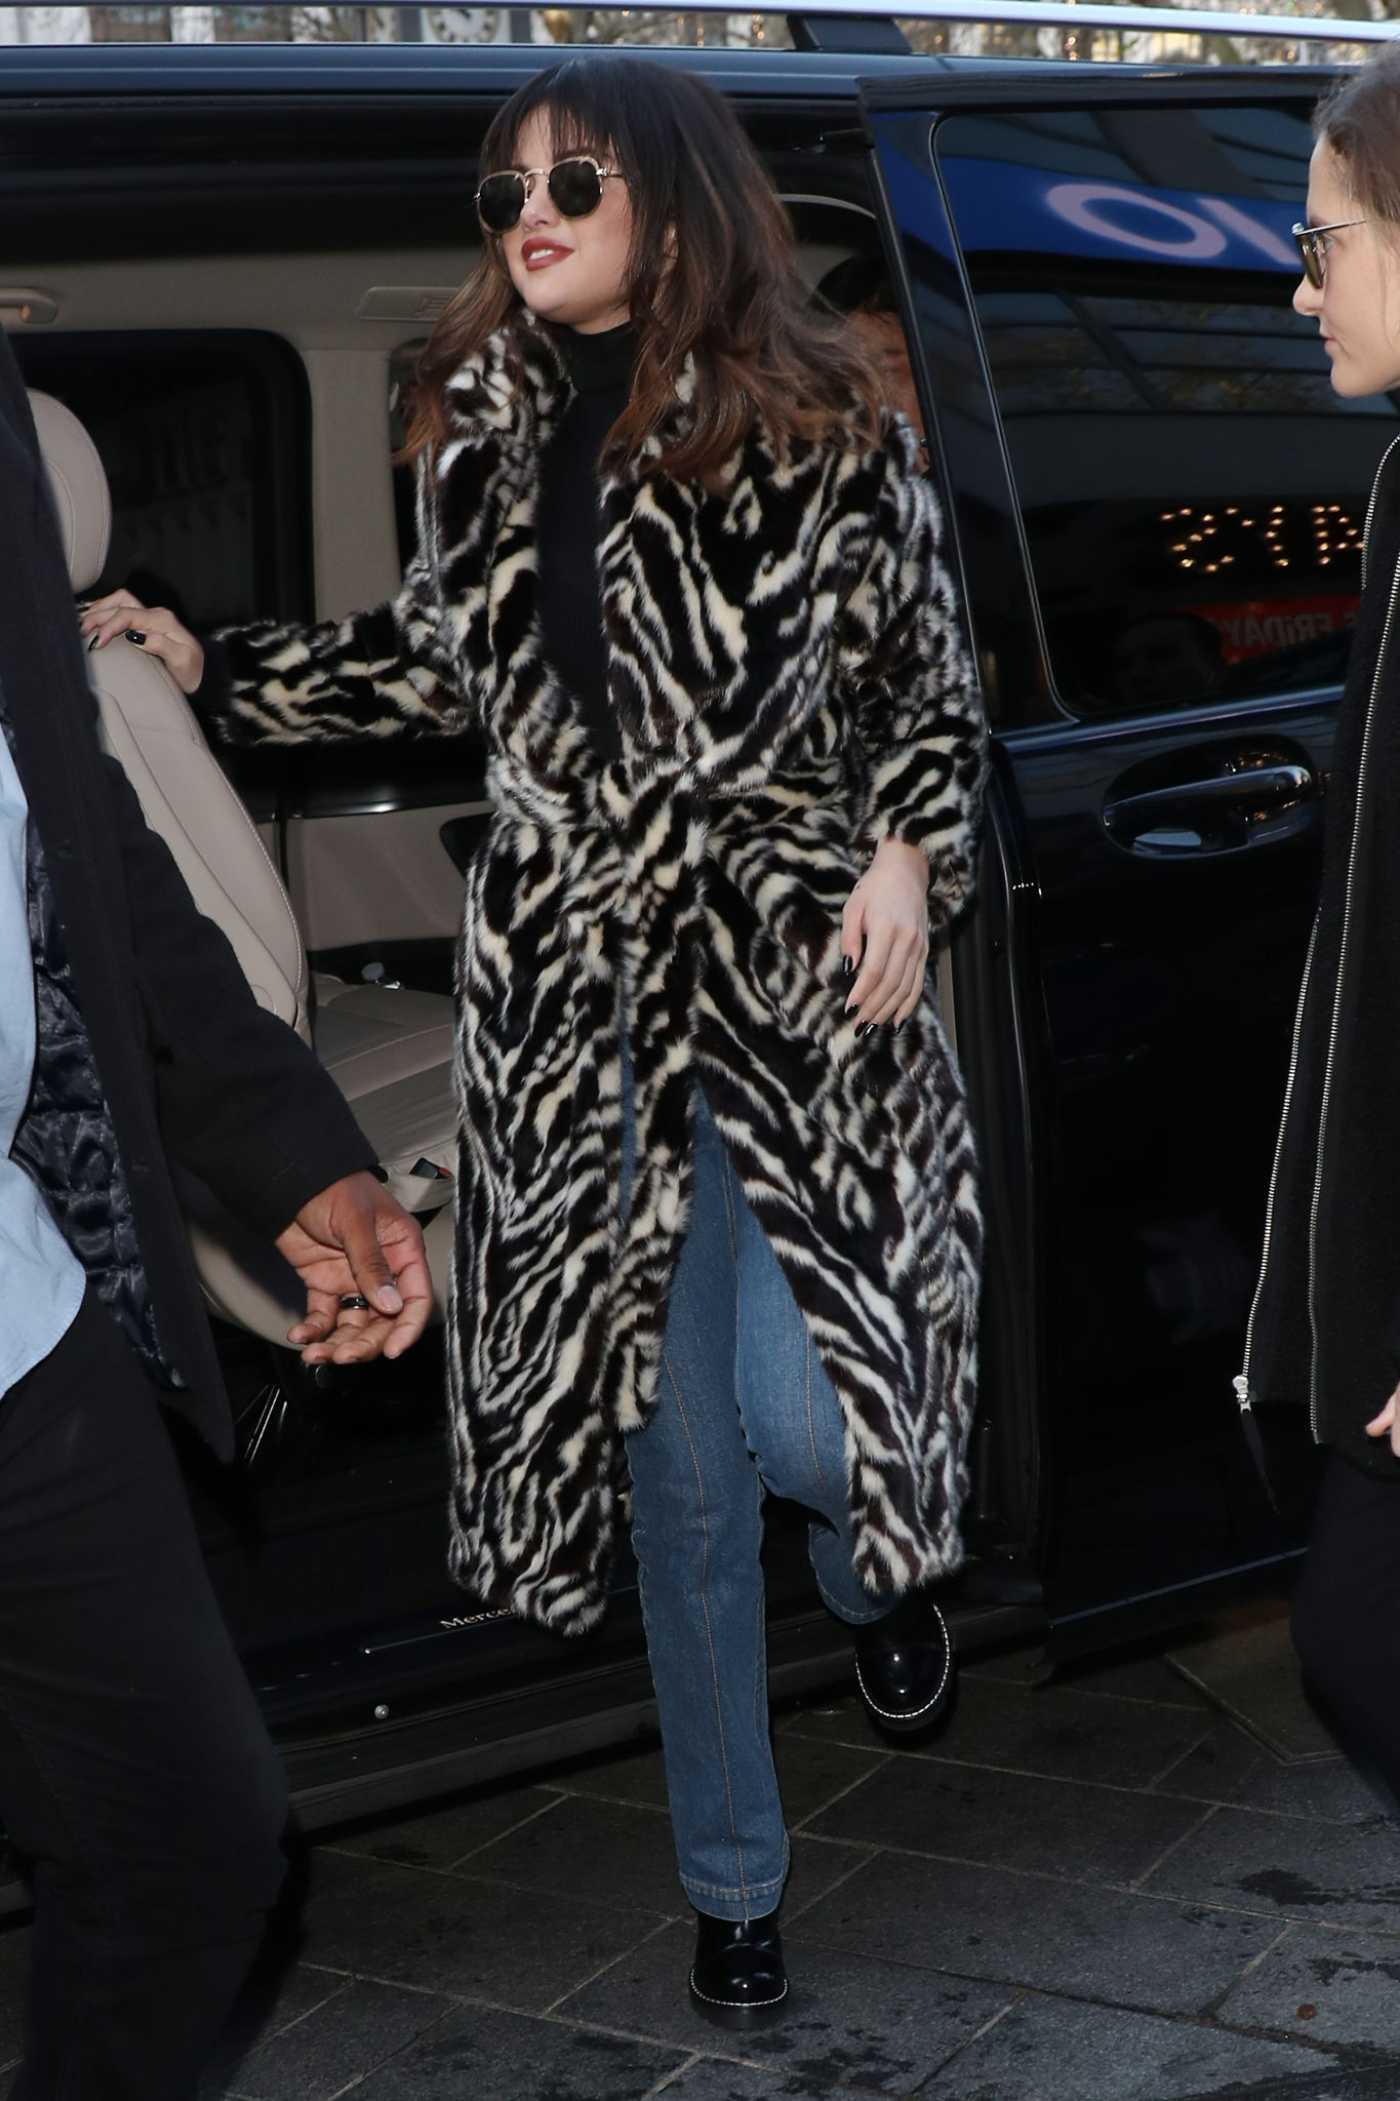 Selena Gomez in a Leopard Print Fur Coat Arriving at Capital Breakfast Radio Studios in London 12/11/2019